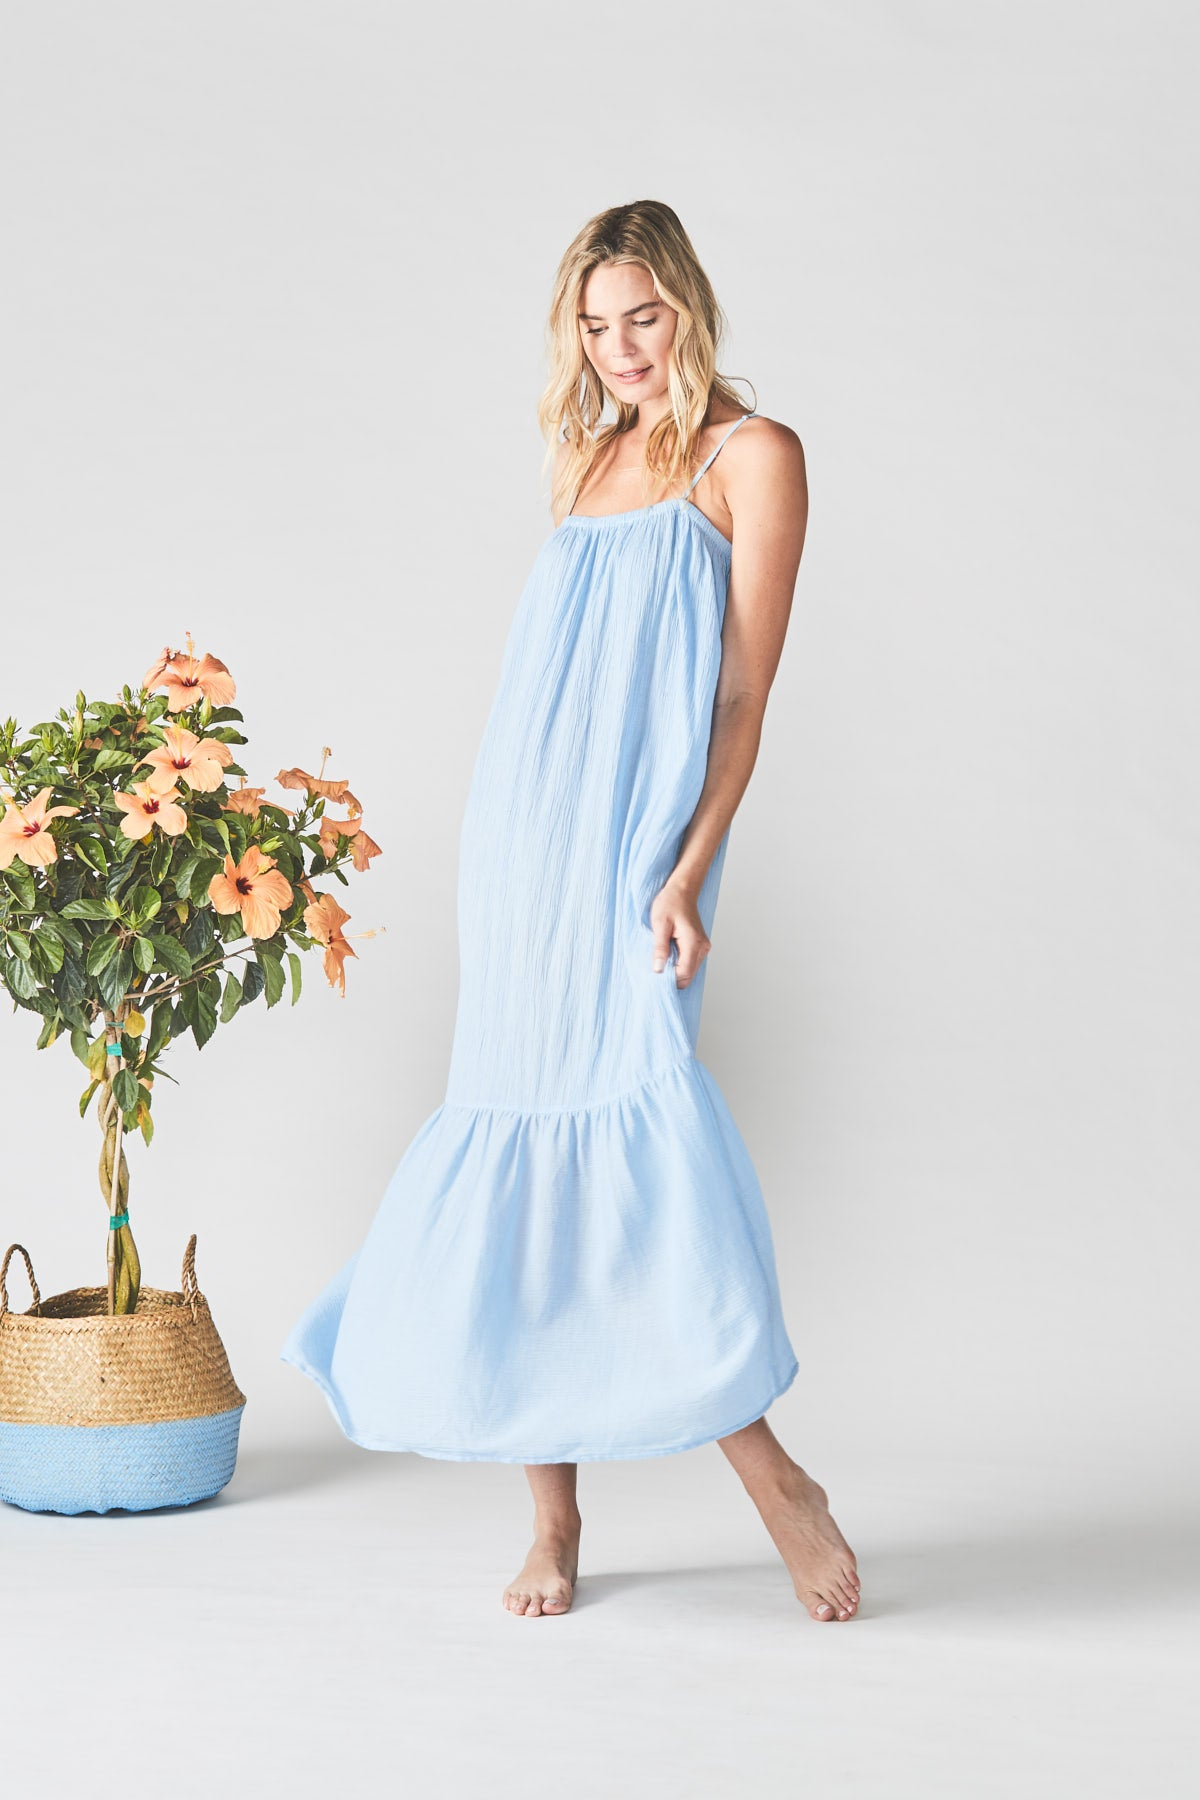 Tide Resort Dress